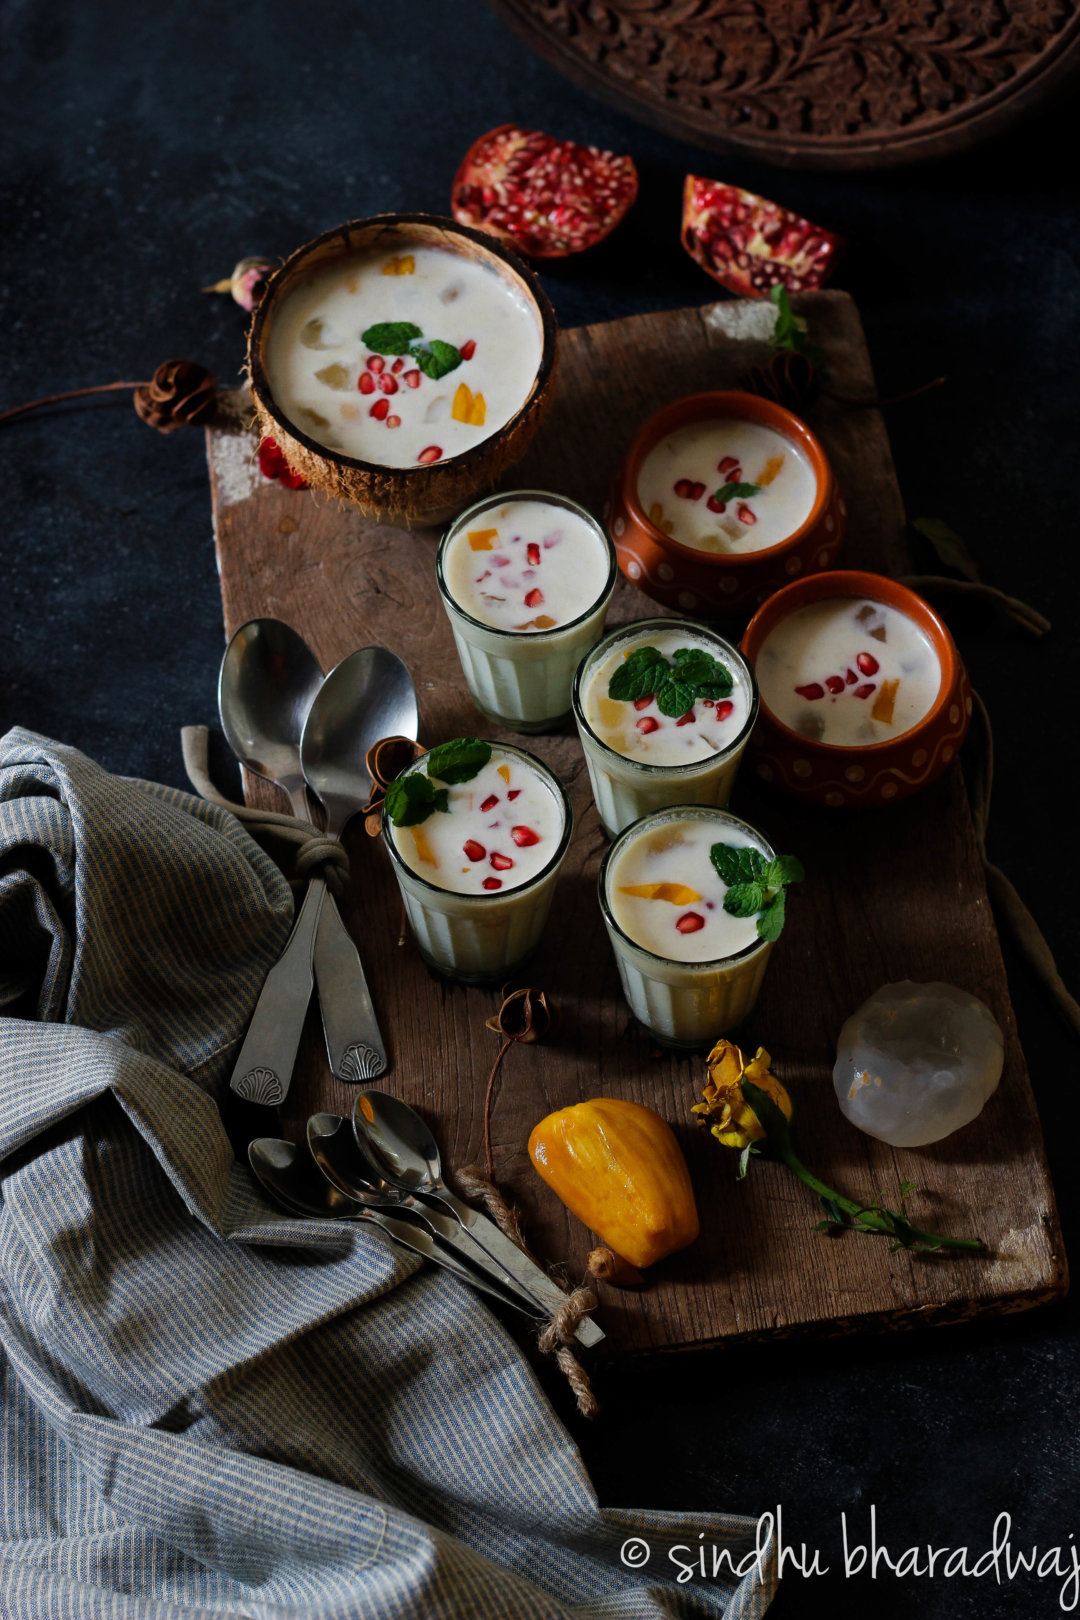 Jackruit and Ice Apple Pudding - A refreshing and easy, light dessert that is vegan and gluten free.